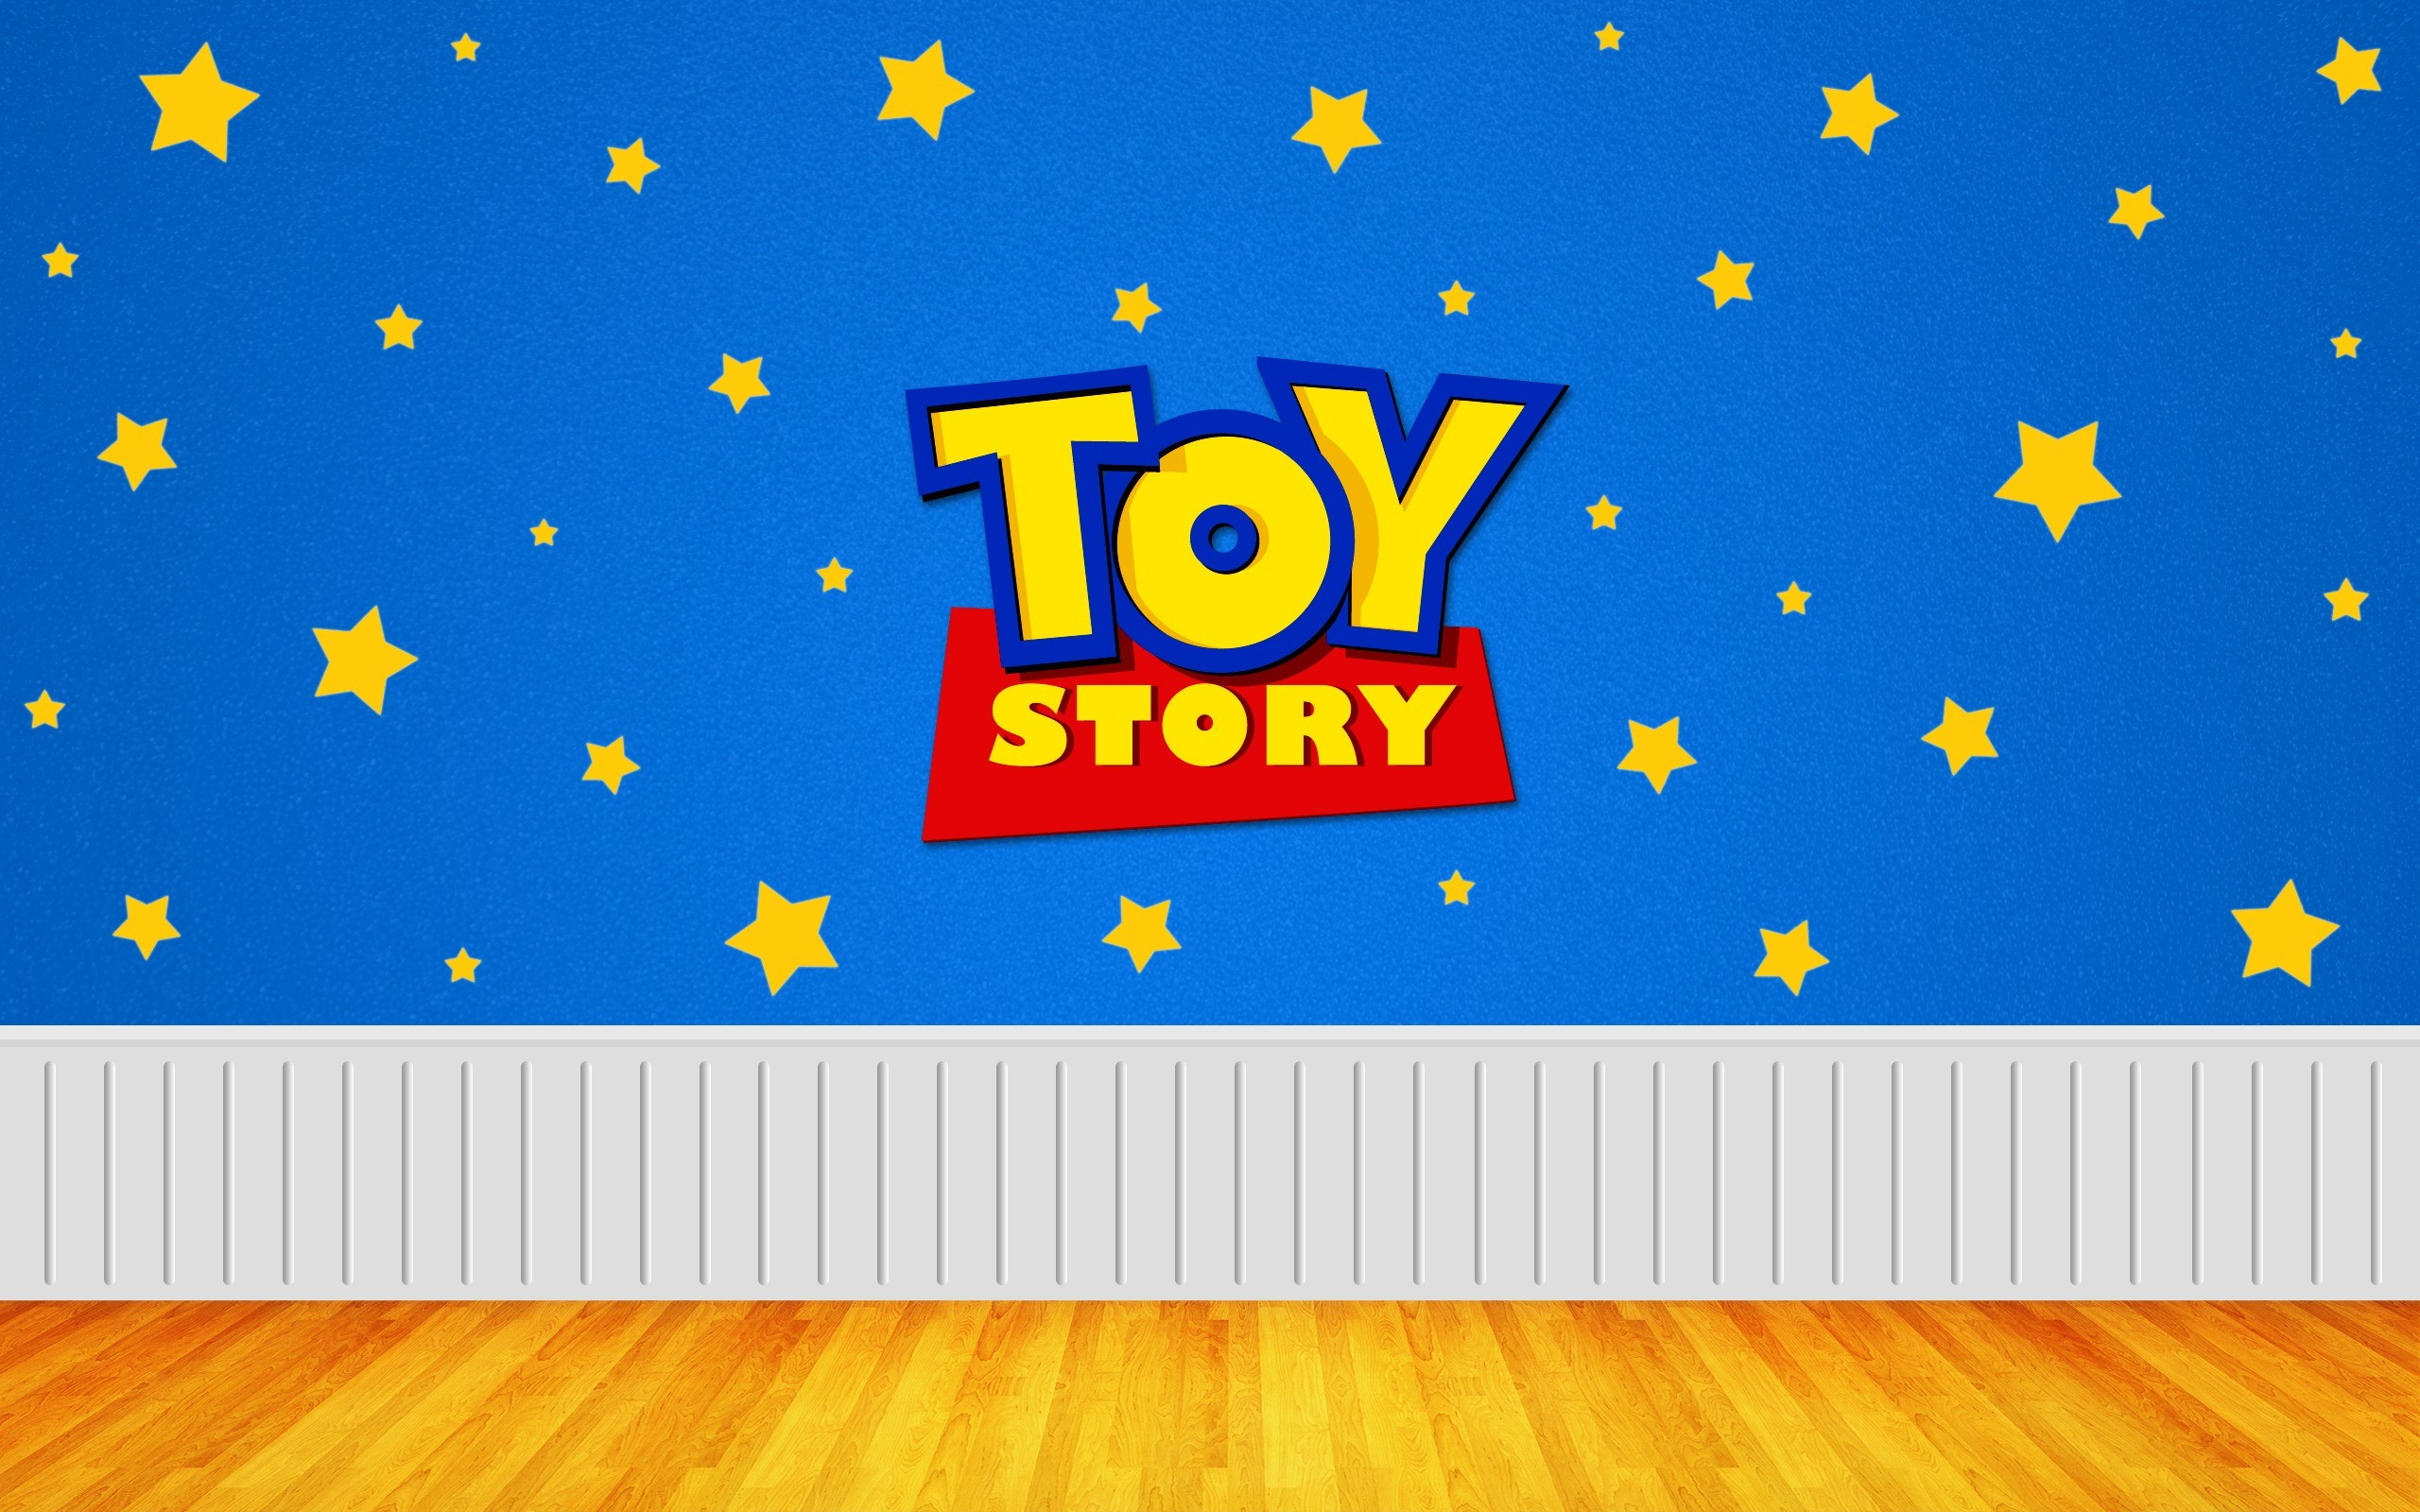 Toy Story Backgrounds Toy Story 3 Wallpaper Background Toy Story 3